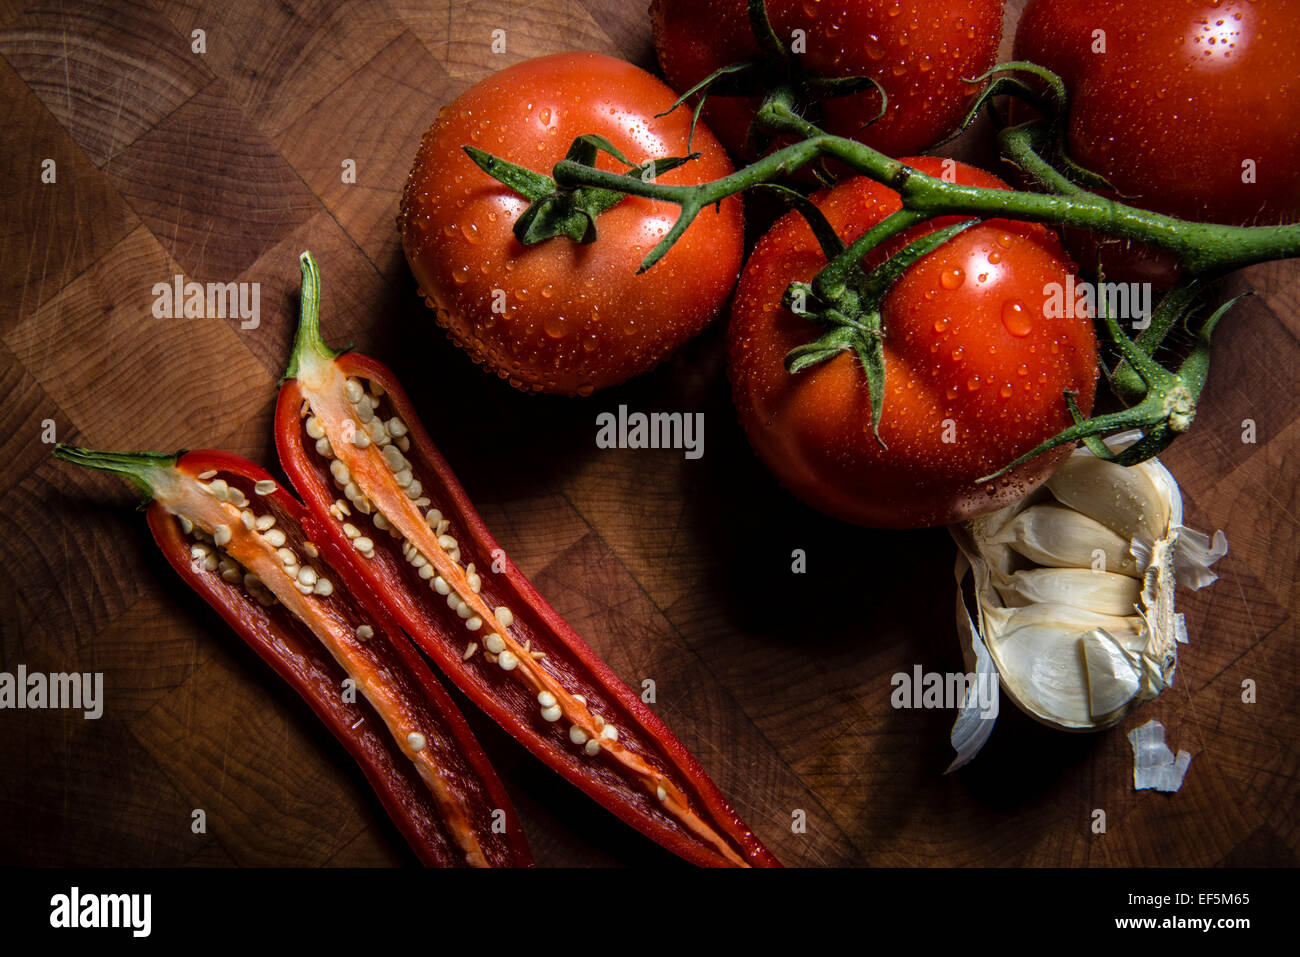 Tomatoes, red chilli and garlic on a chopping board Stock Photo